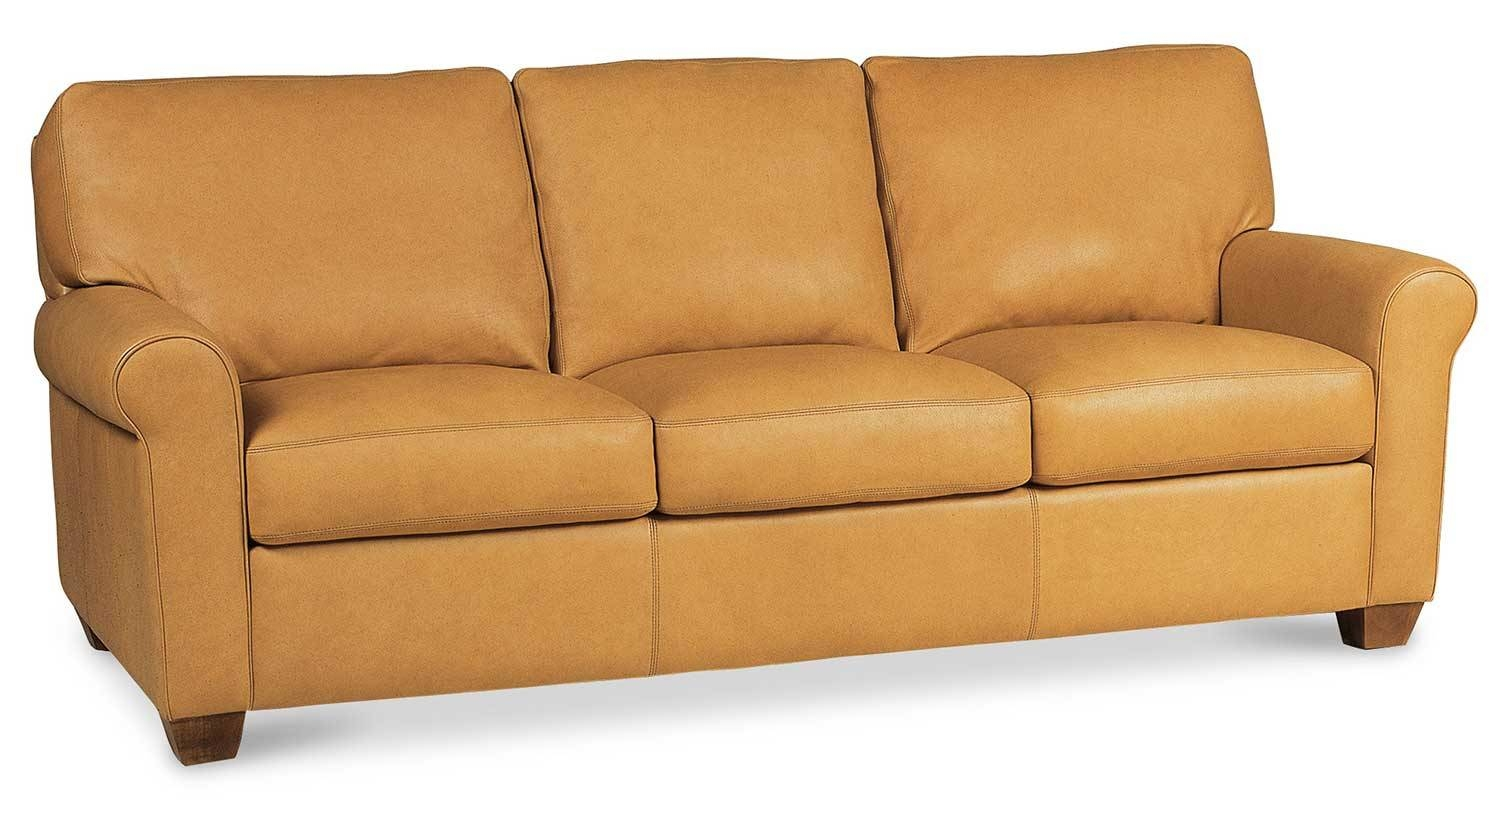 Circle Furniture – Savoy Sofa | Designer Sofas Cambridge | Circle In Savoy Sofas (View 7 of 15)